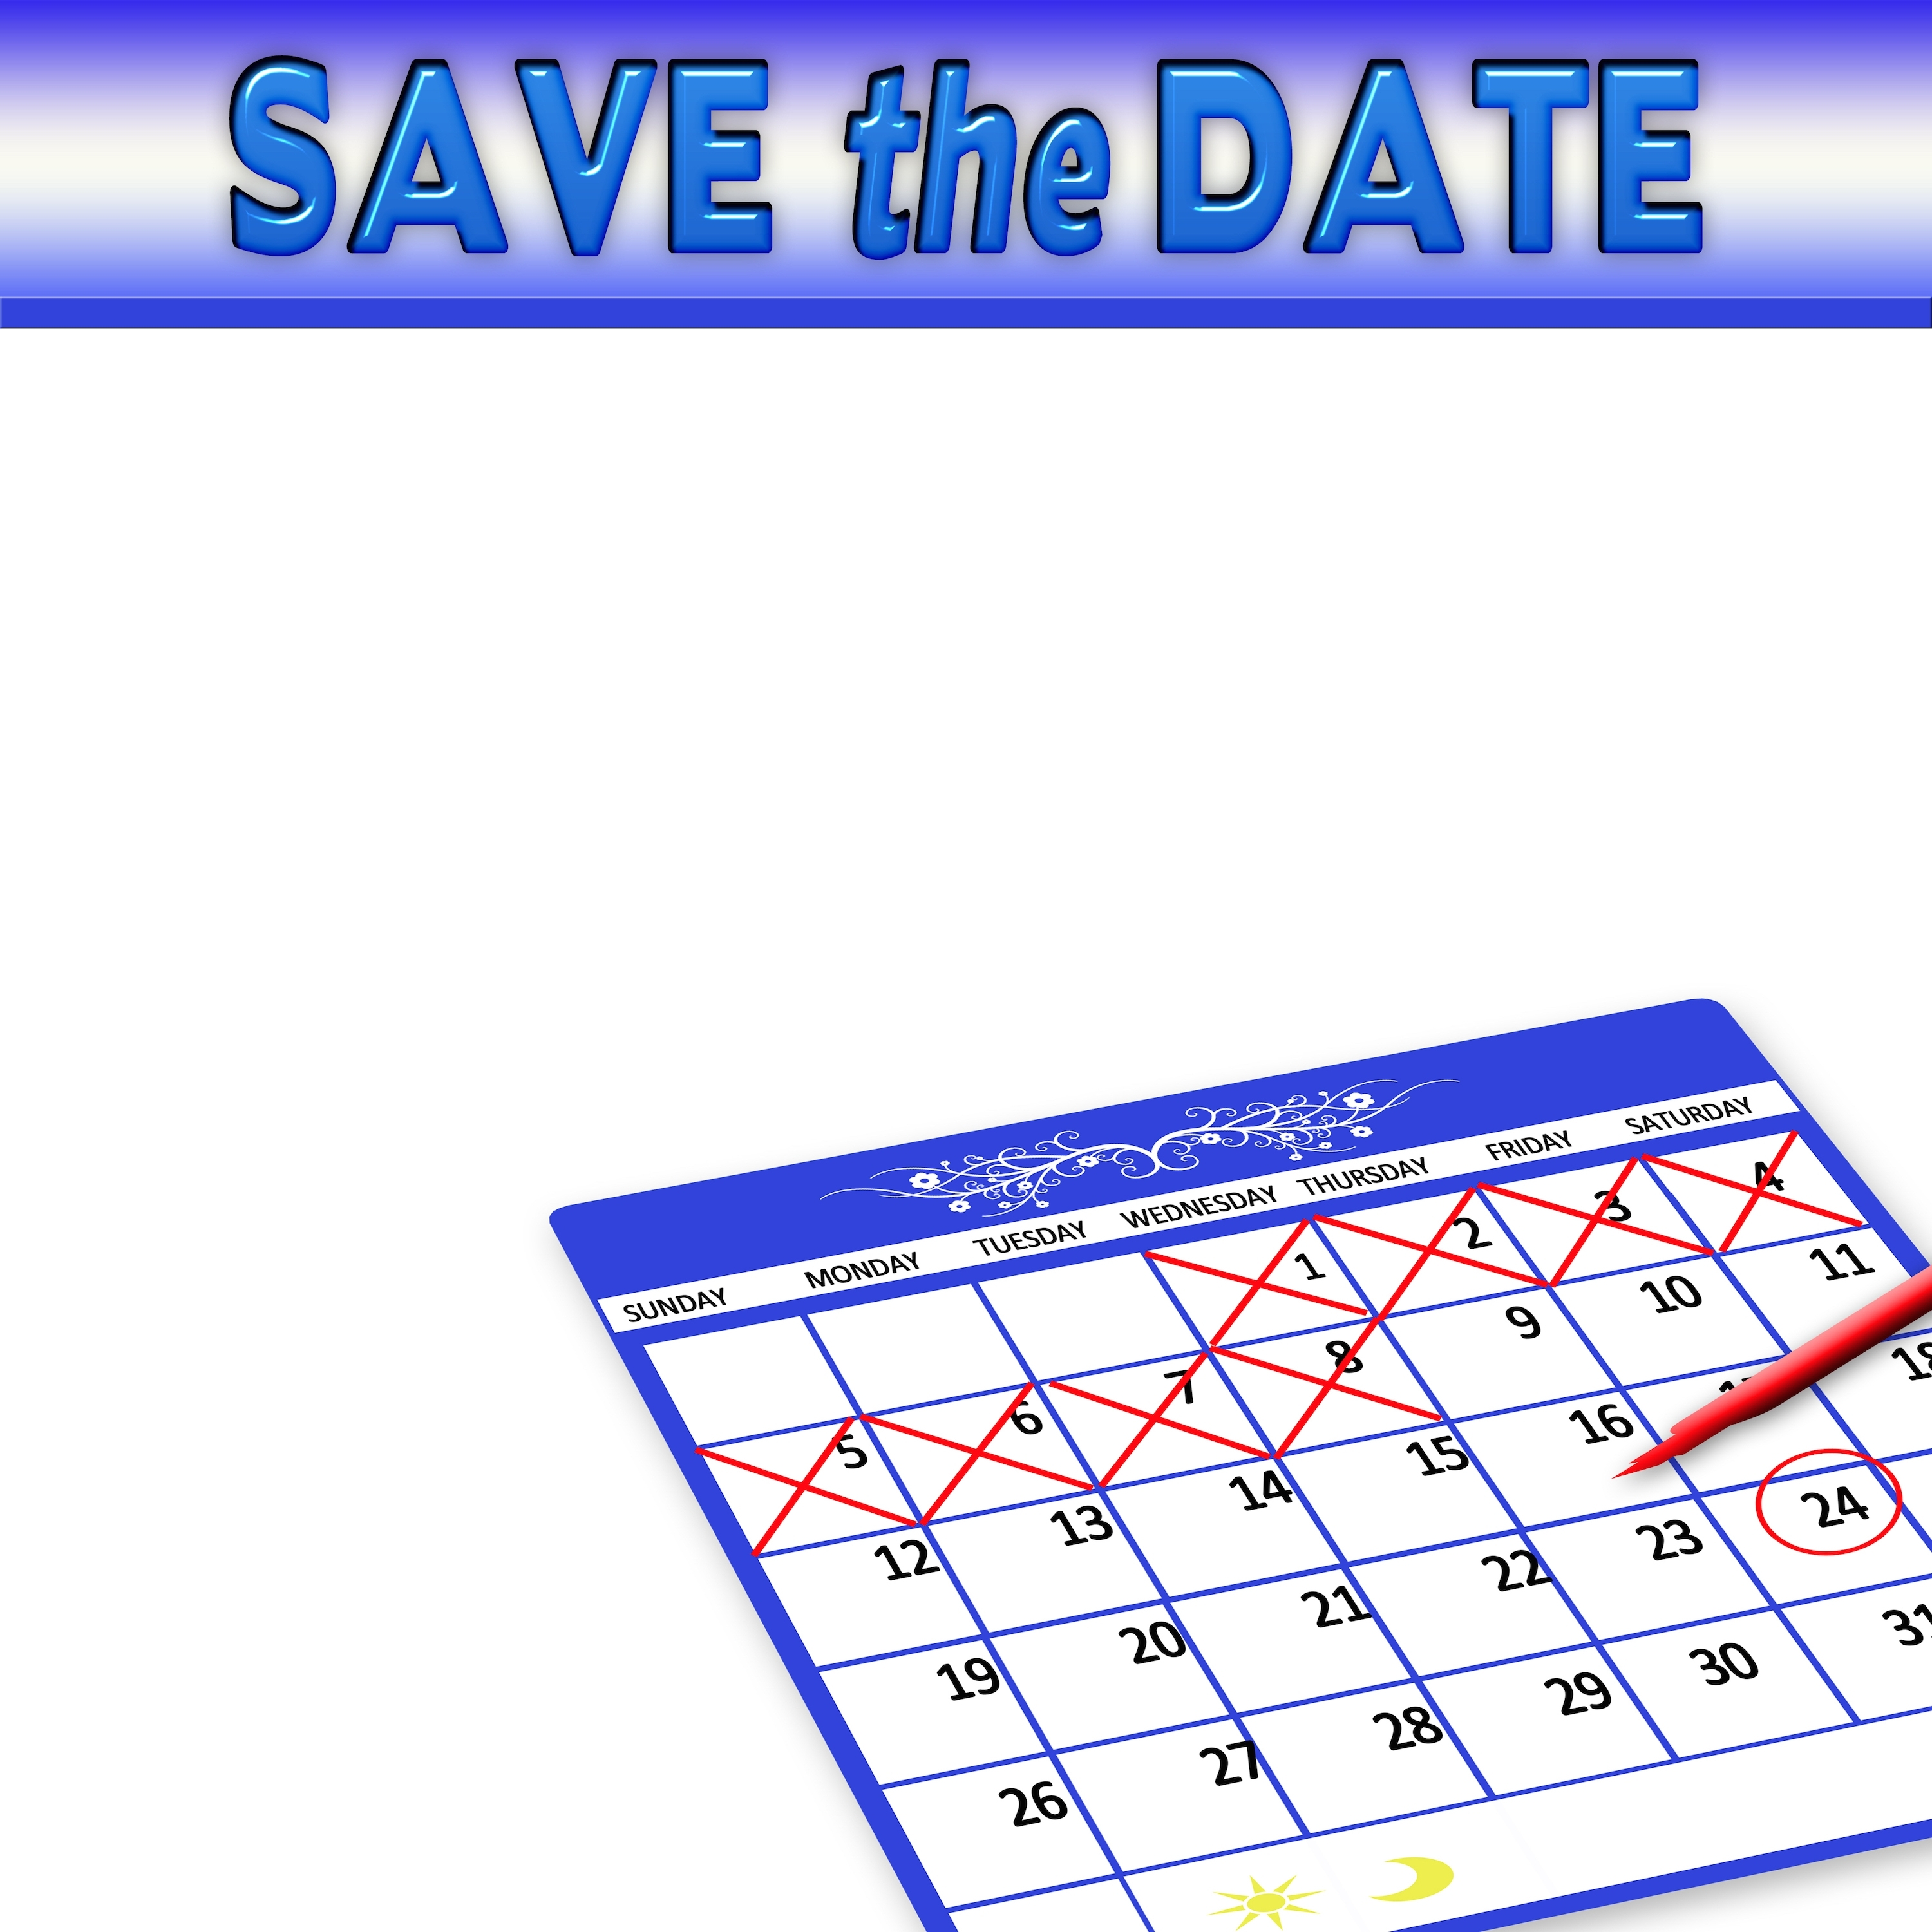 4c84d5054271ffc7d680_d8d5aef4f93afcd8f42e_Save_The_Date.jpg